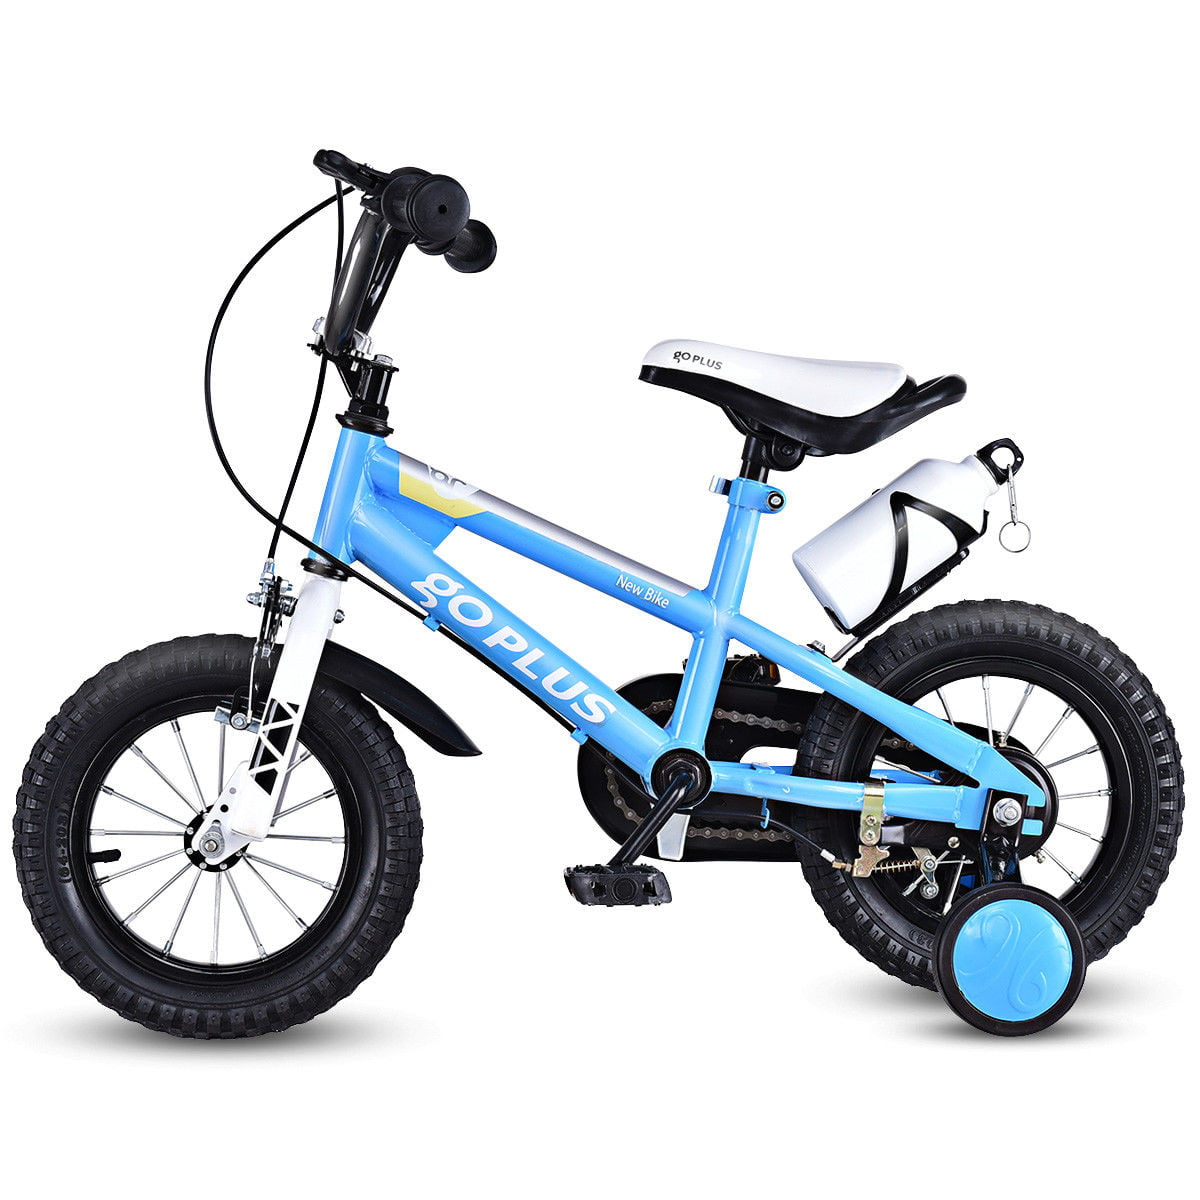 Goplus 12'' Freestyle Kids Bike Bicycle Children Boys & Girls w Training Wheels Blue by Costway